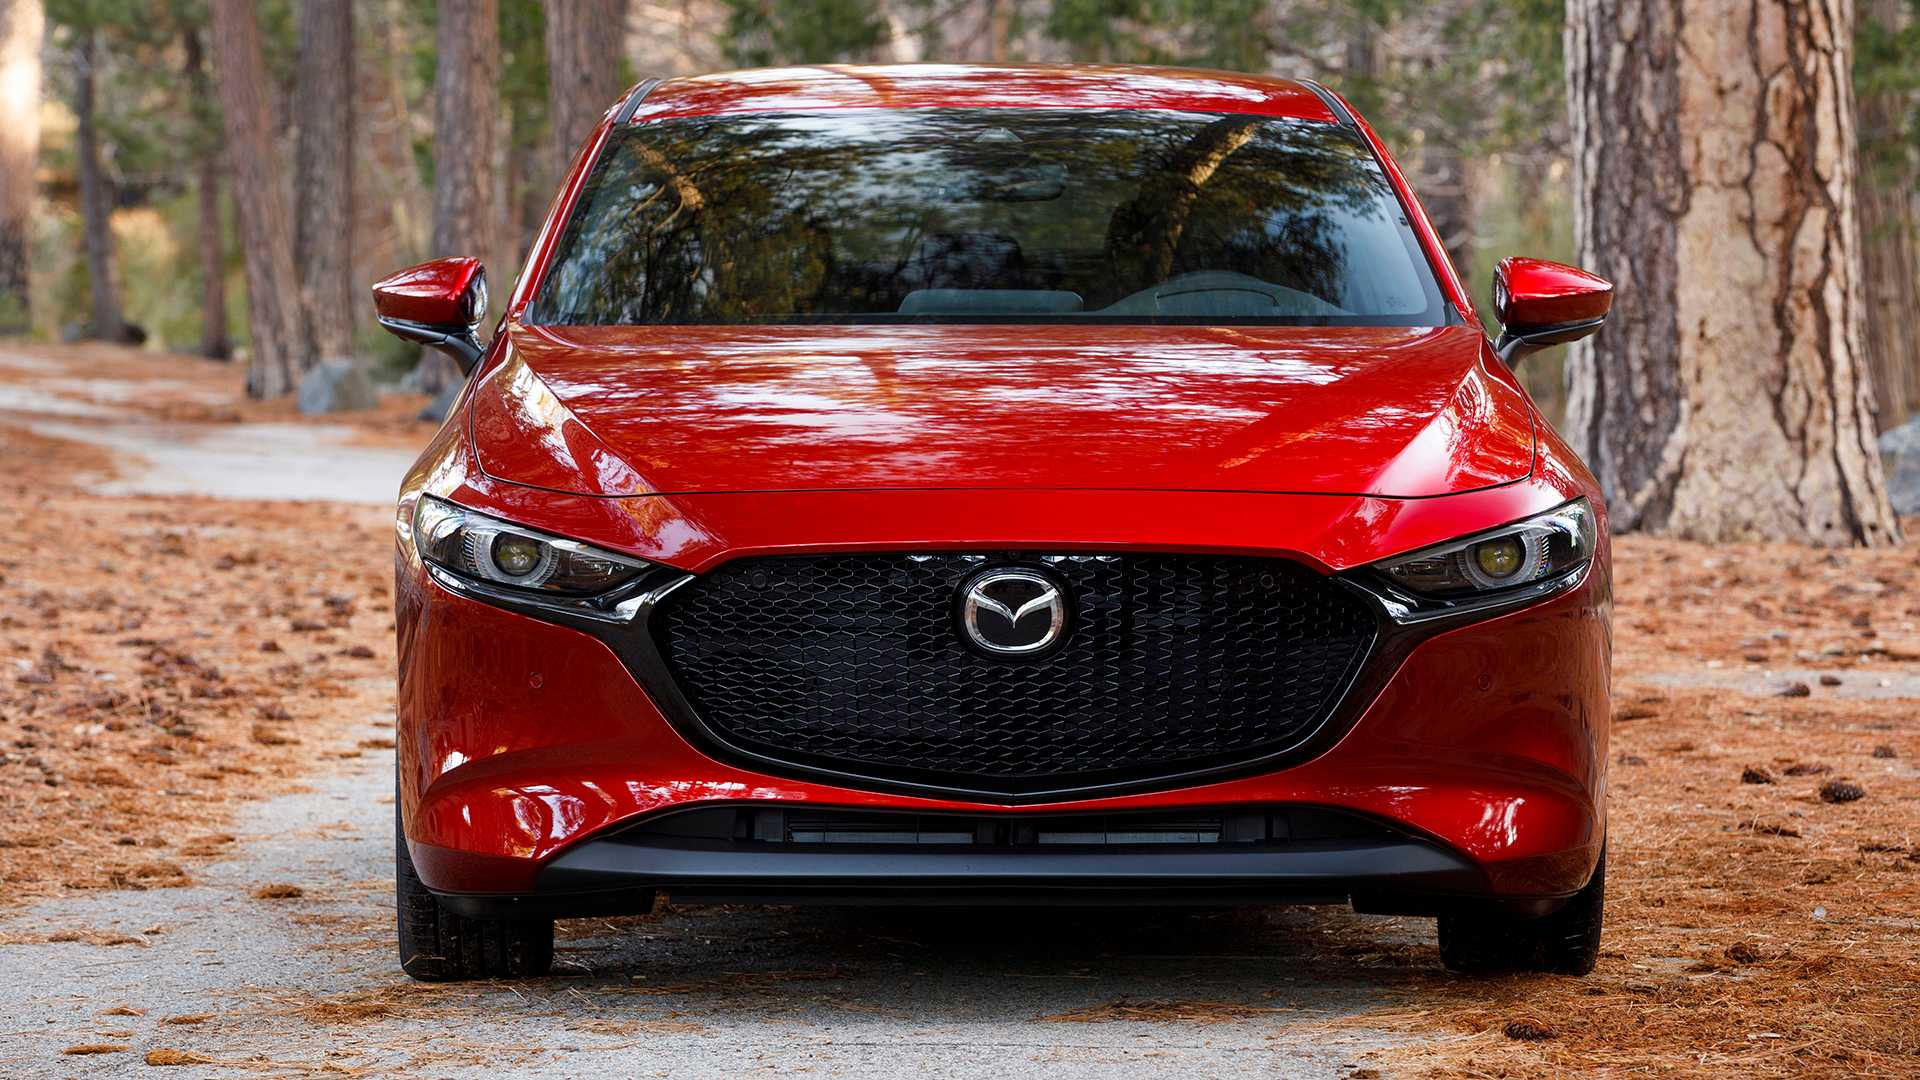 Mazda Skyactiv X Engine European Specs Emerge Makes 178 Hp